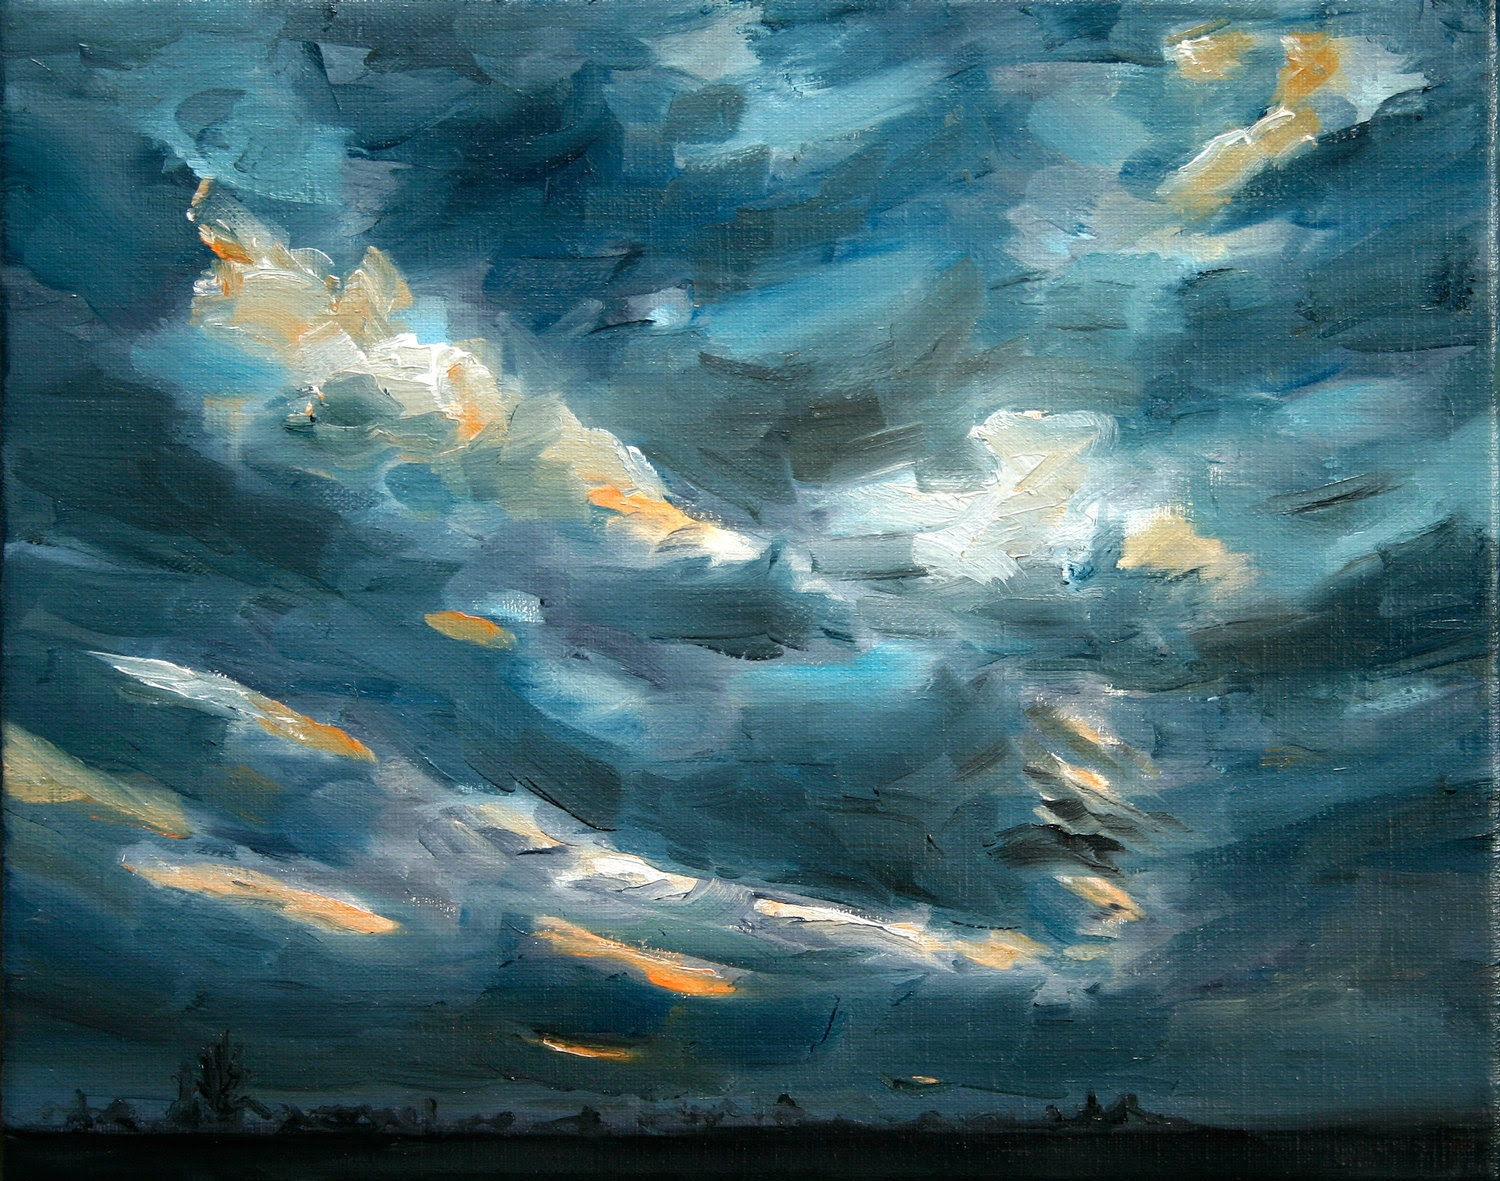 Sky original oil painting Netherlands oil painting 30 x 40 cm - NancyvandenBoom